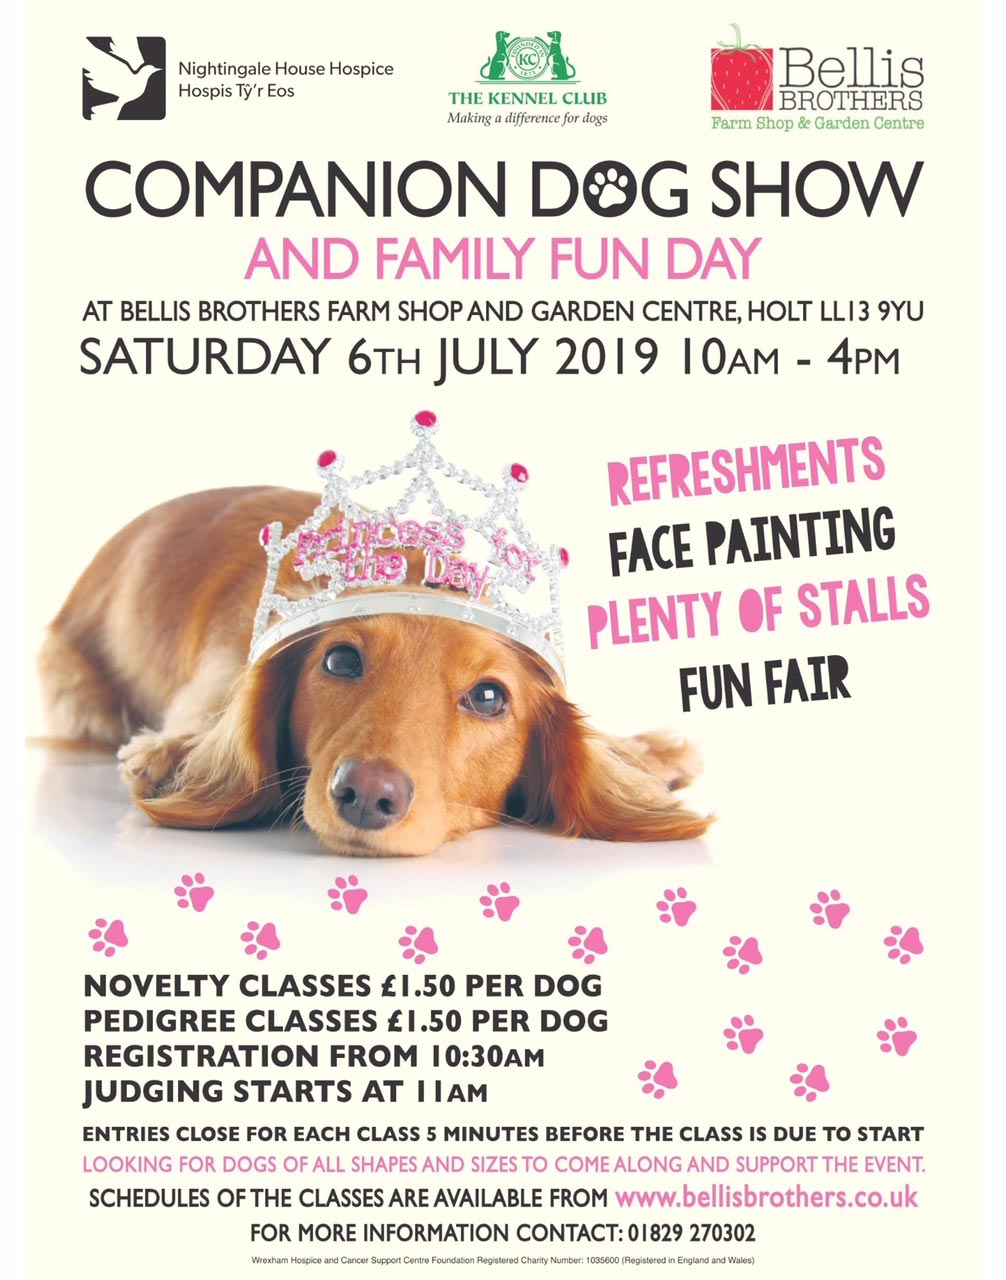 Nightingale House Hospice Fun Day And Dog Show